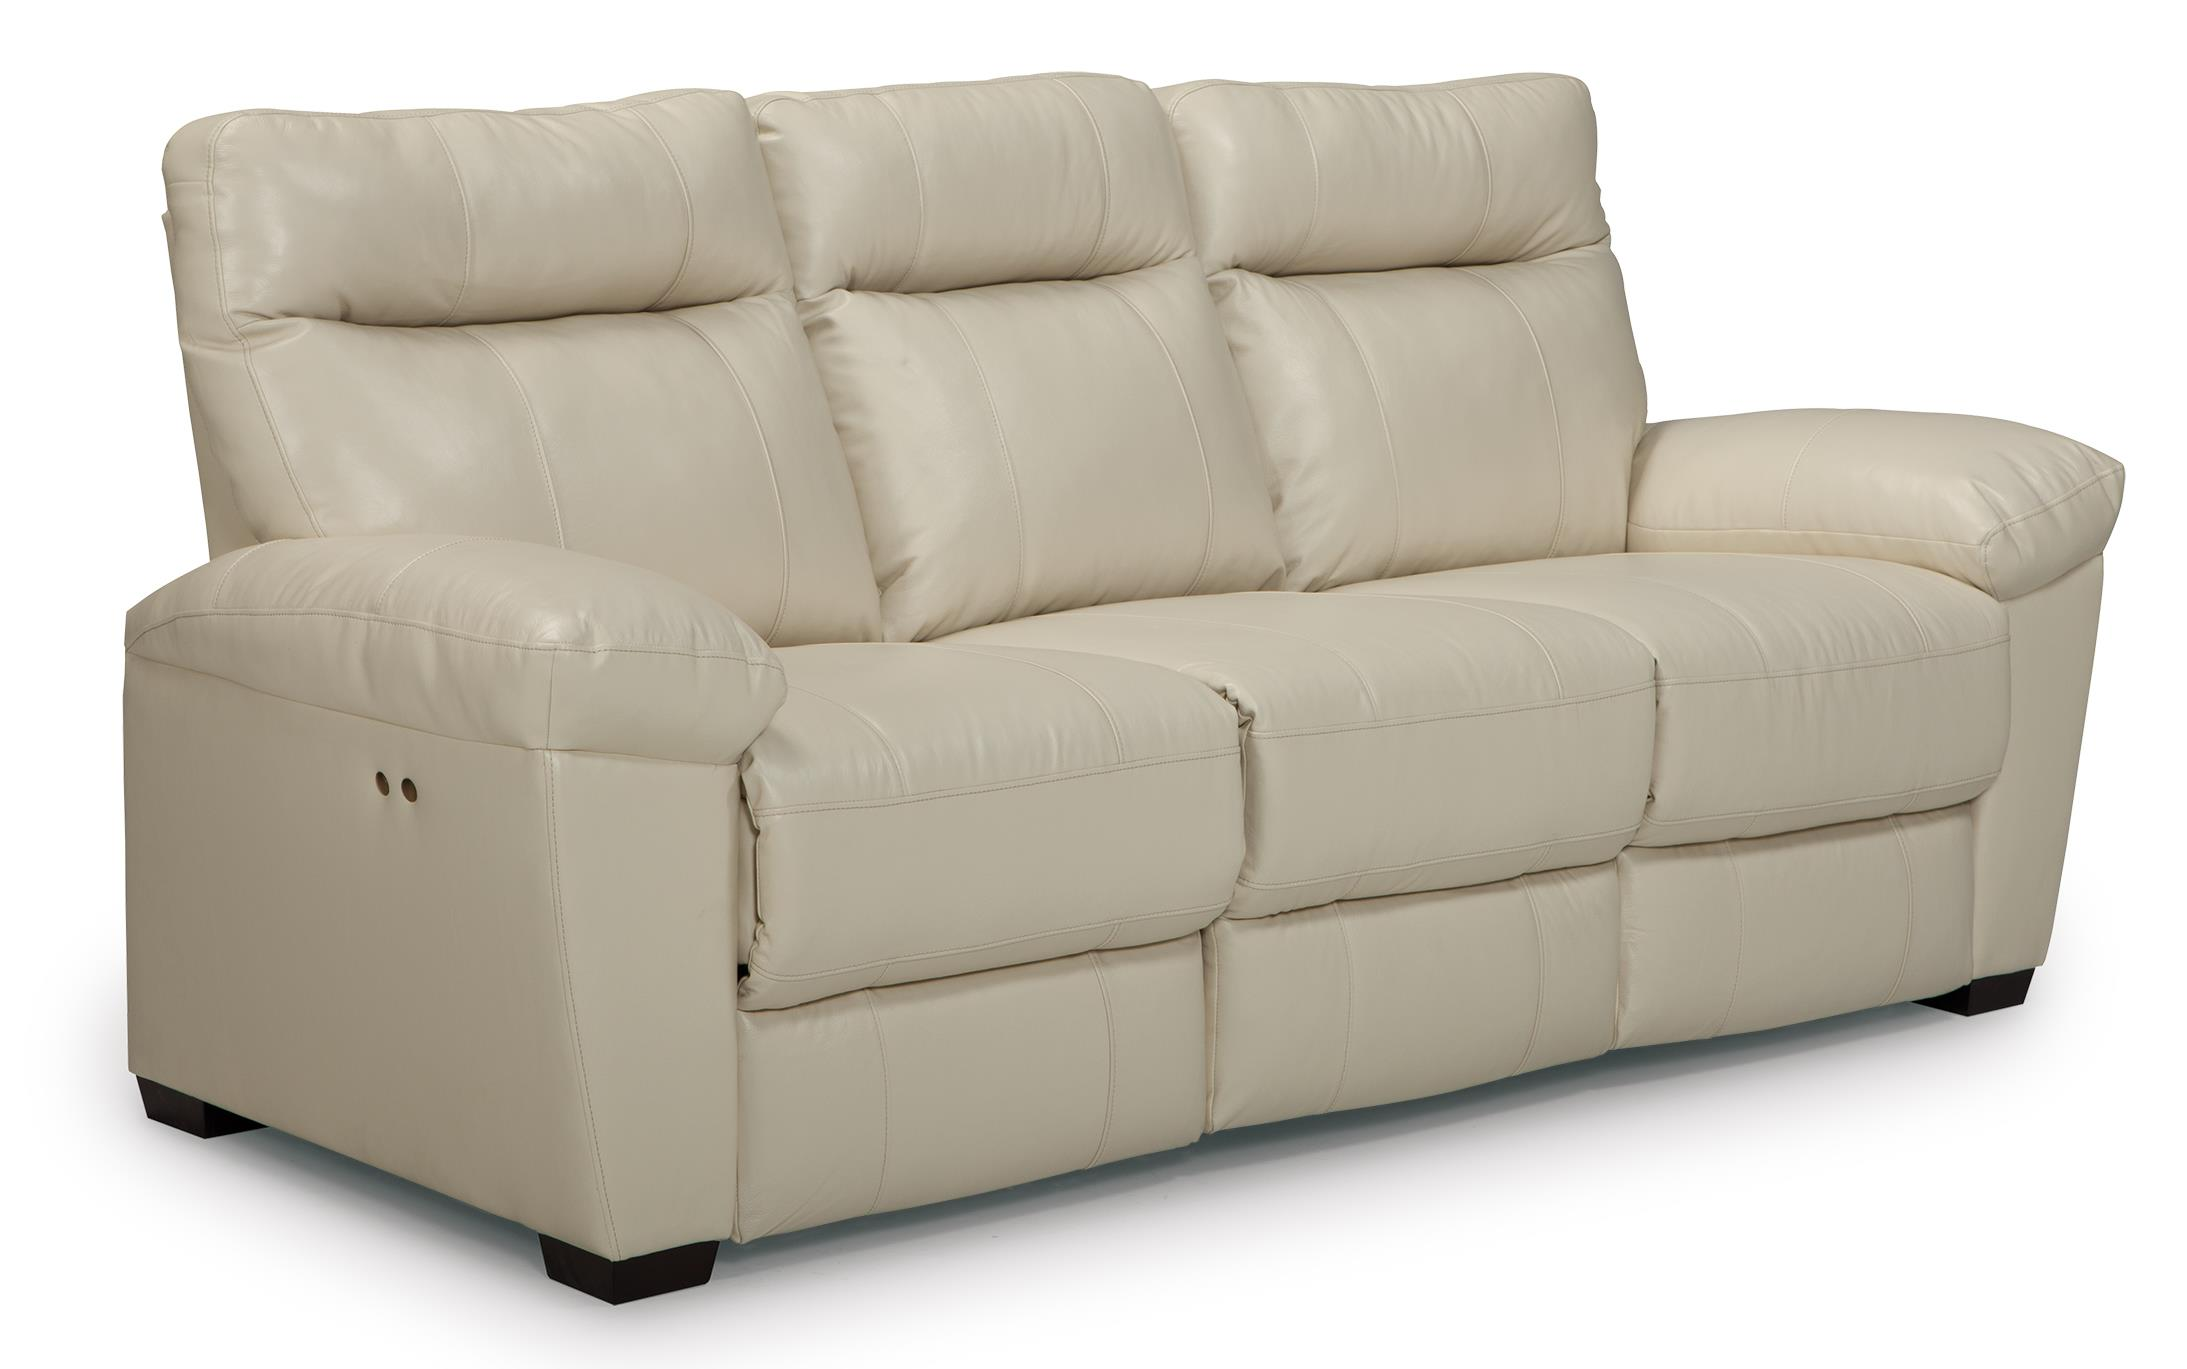 Best Home Furnishings Makena Power Reclining Sofa - Item Number: S900CP2-78017L